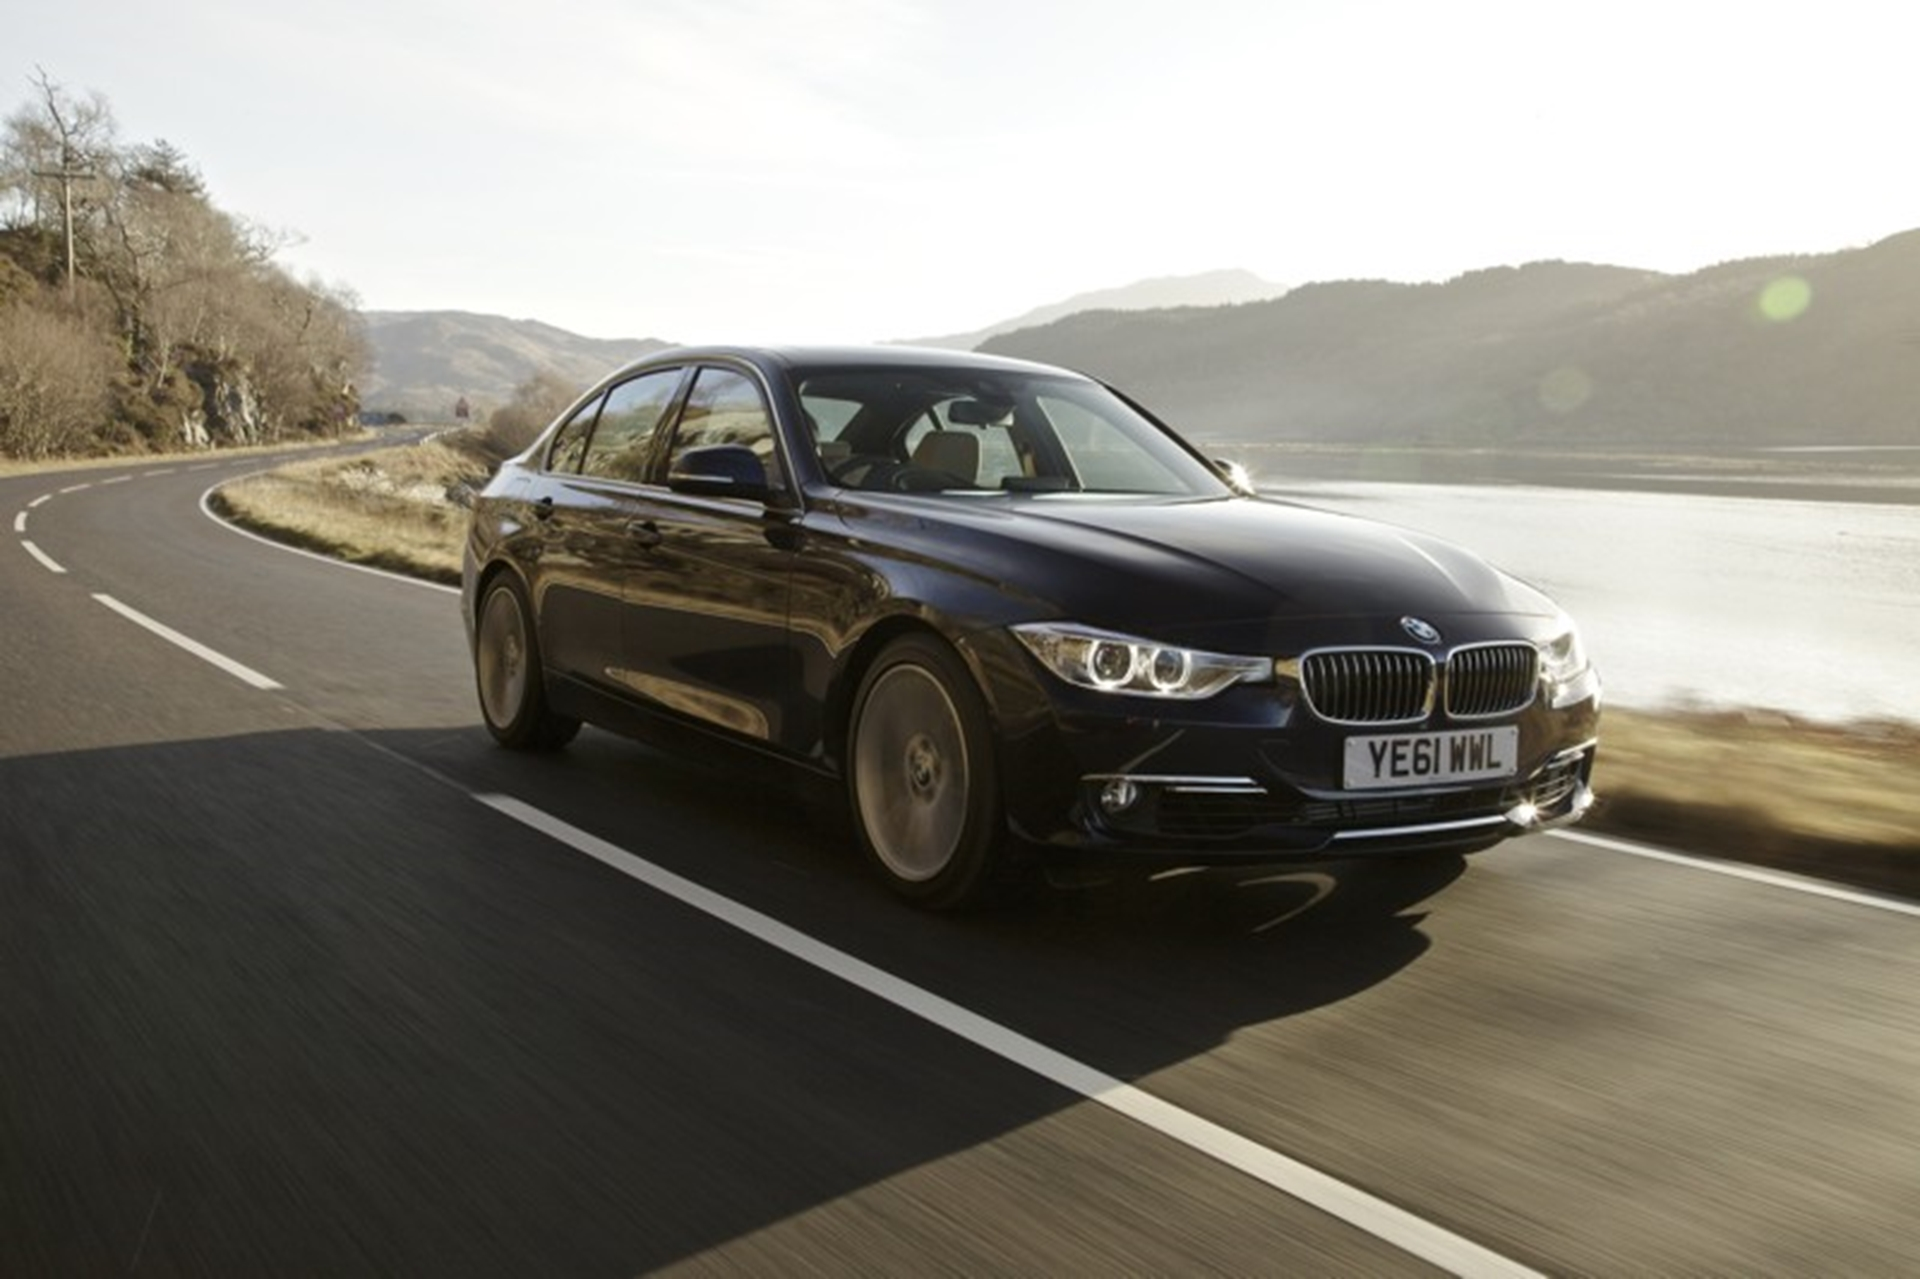 The new BMW 3 Series Saloon - 320d Sport